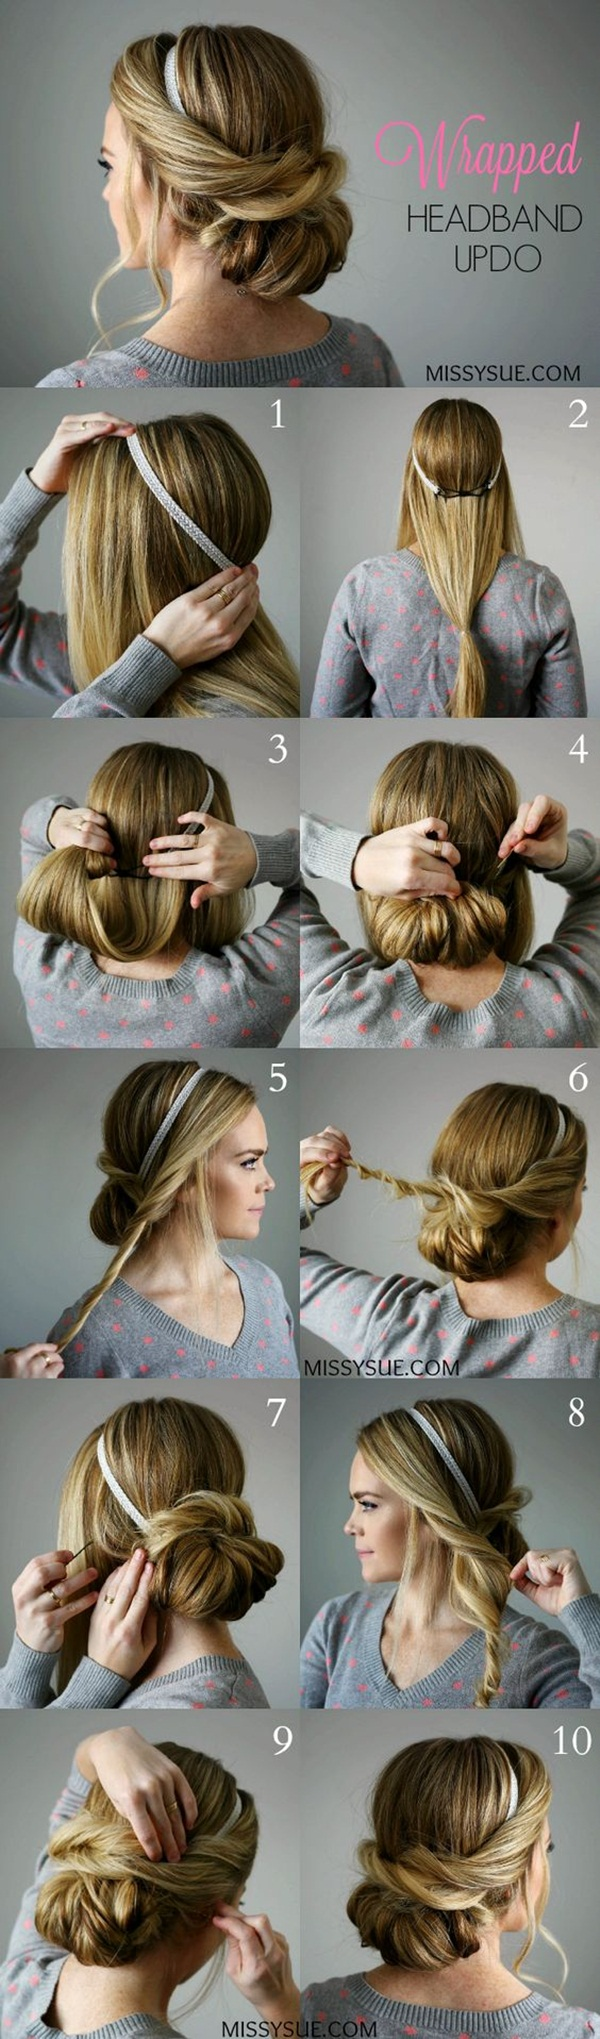 Easy Hairstyles For School (13)